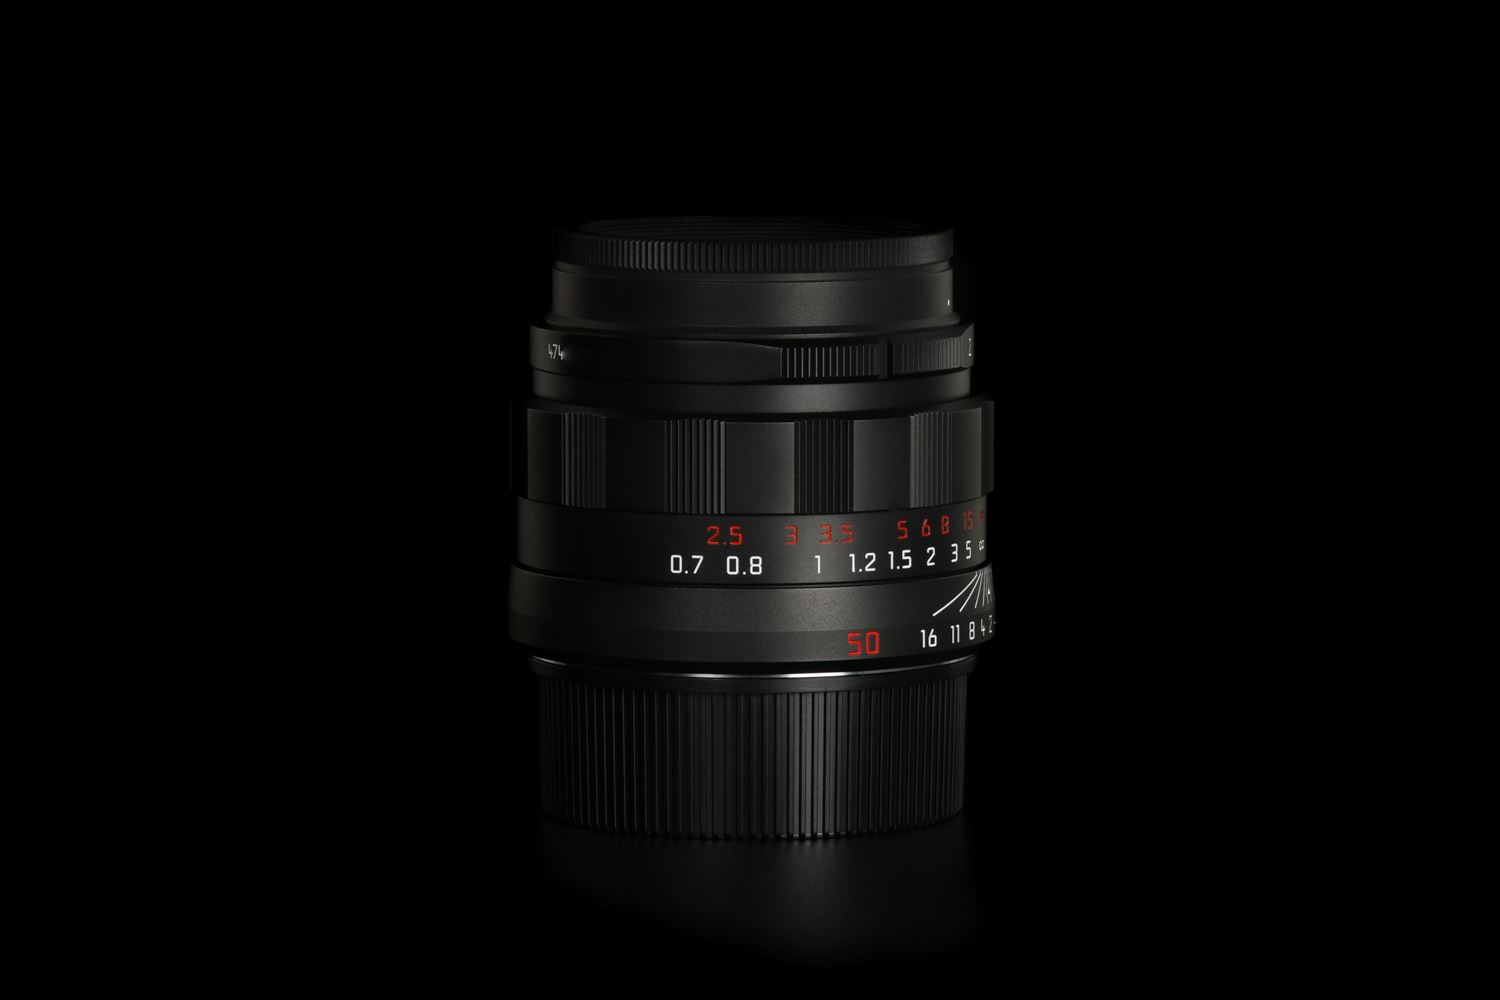 Picture of APO-Summicron-M 50mm f/2 ASPH., black chrome finish